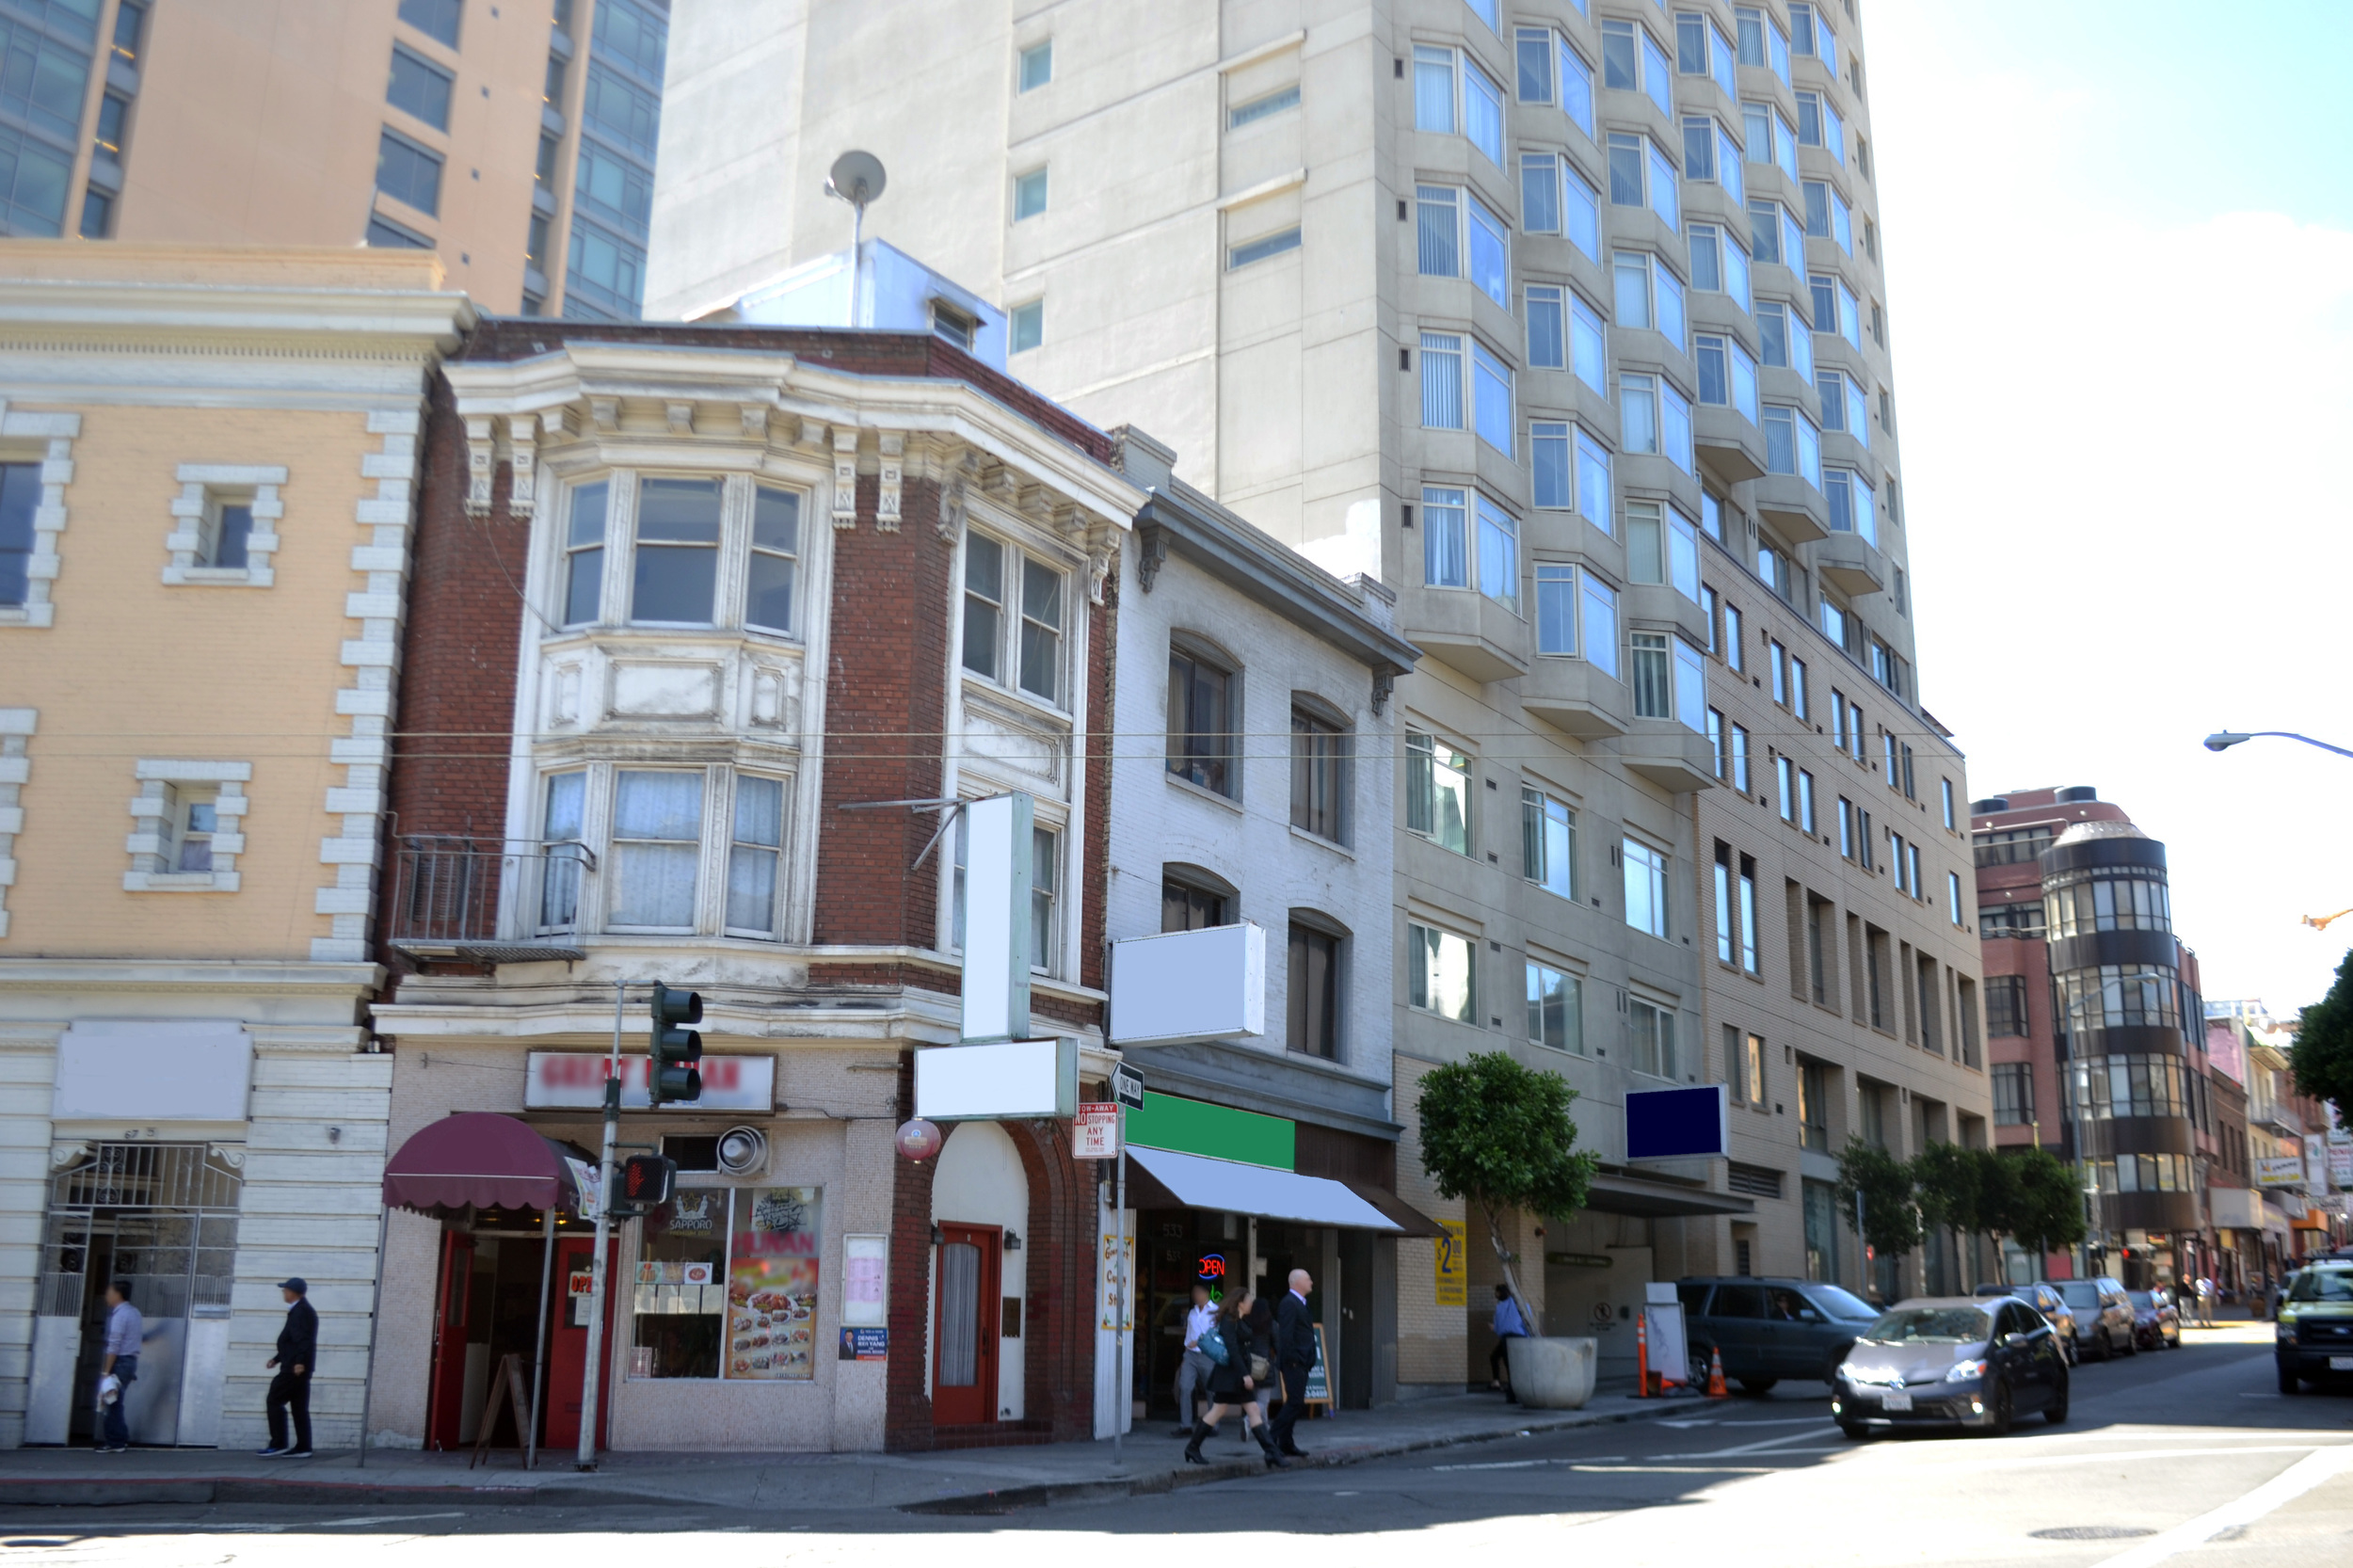 San Francisco - Financial District  $1,000,000 1st Trust Deed loan for purchase of a mixed-use building